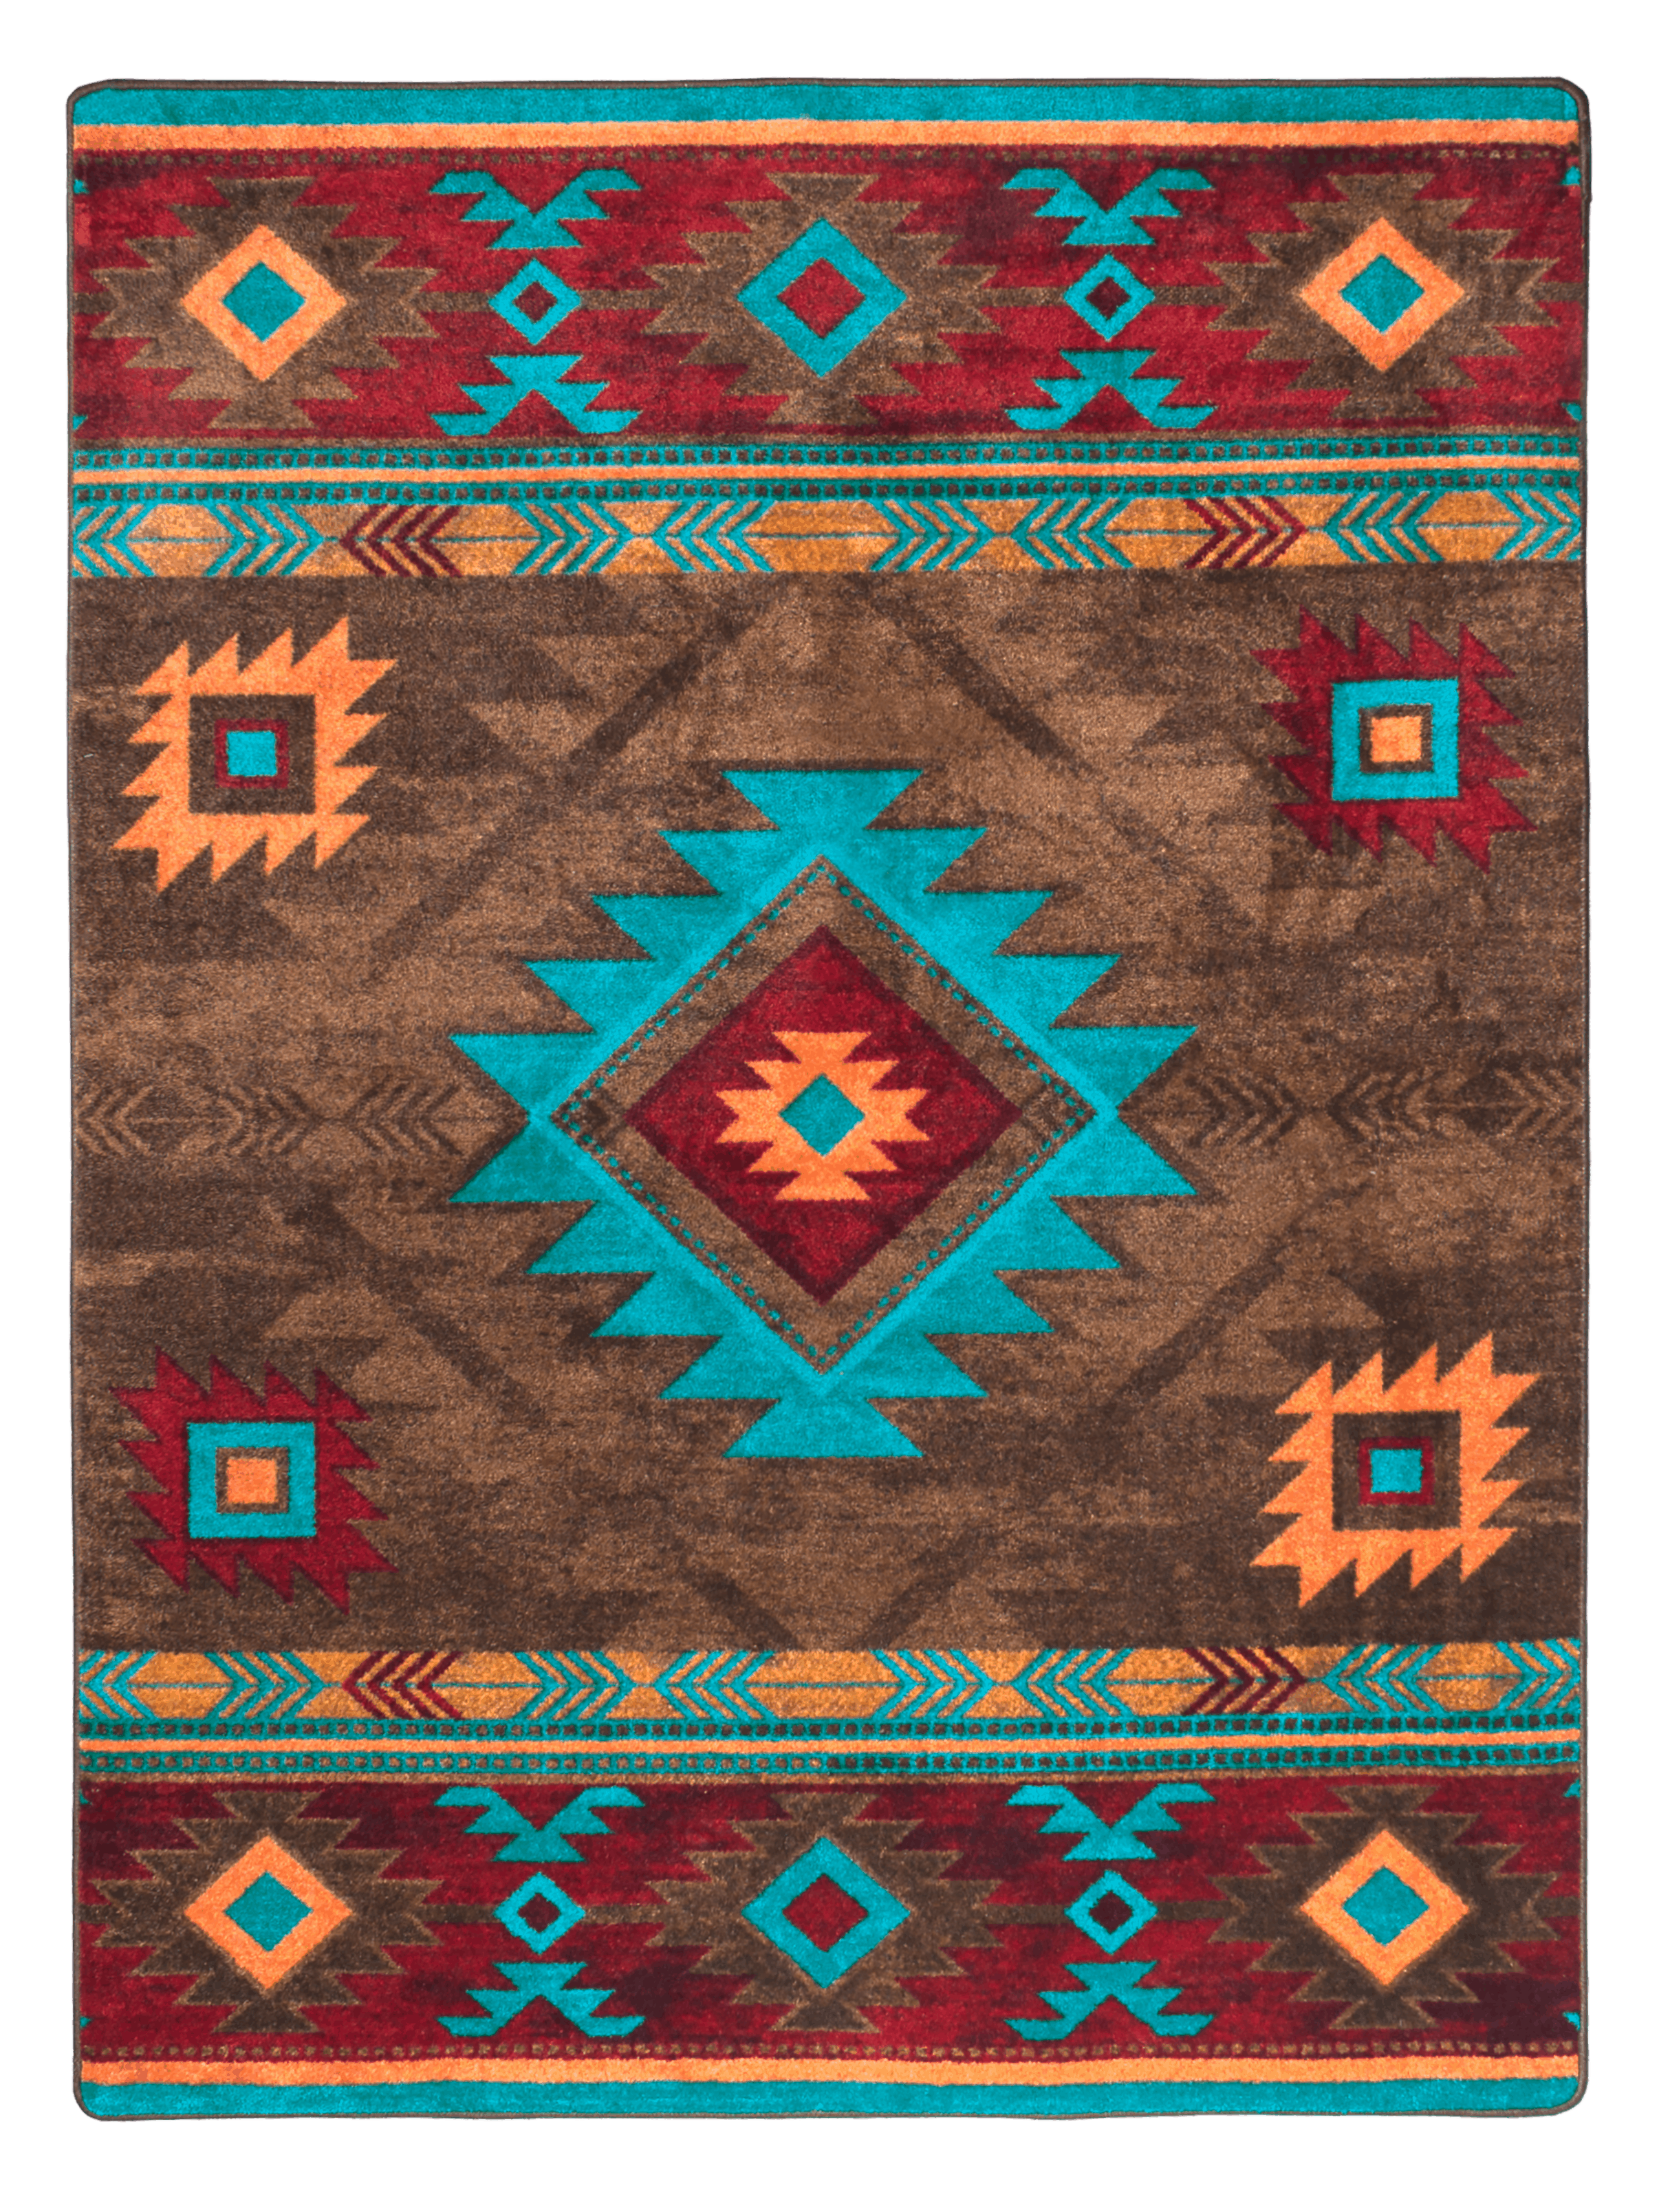 Whiskey River Turquoise Rug On Sale Now With Free Shipping